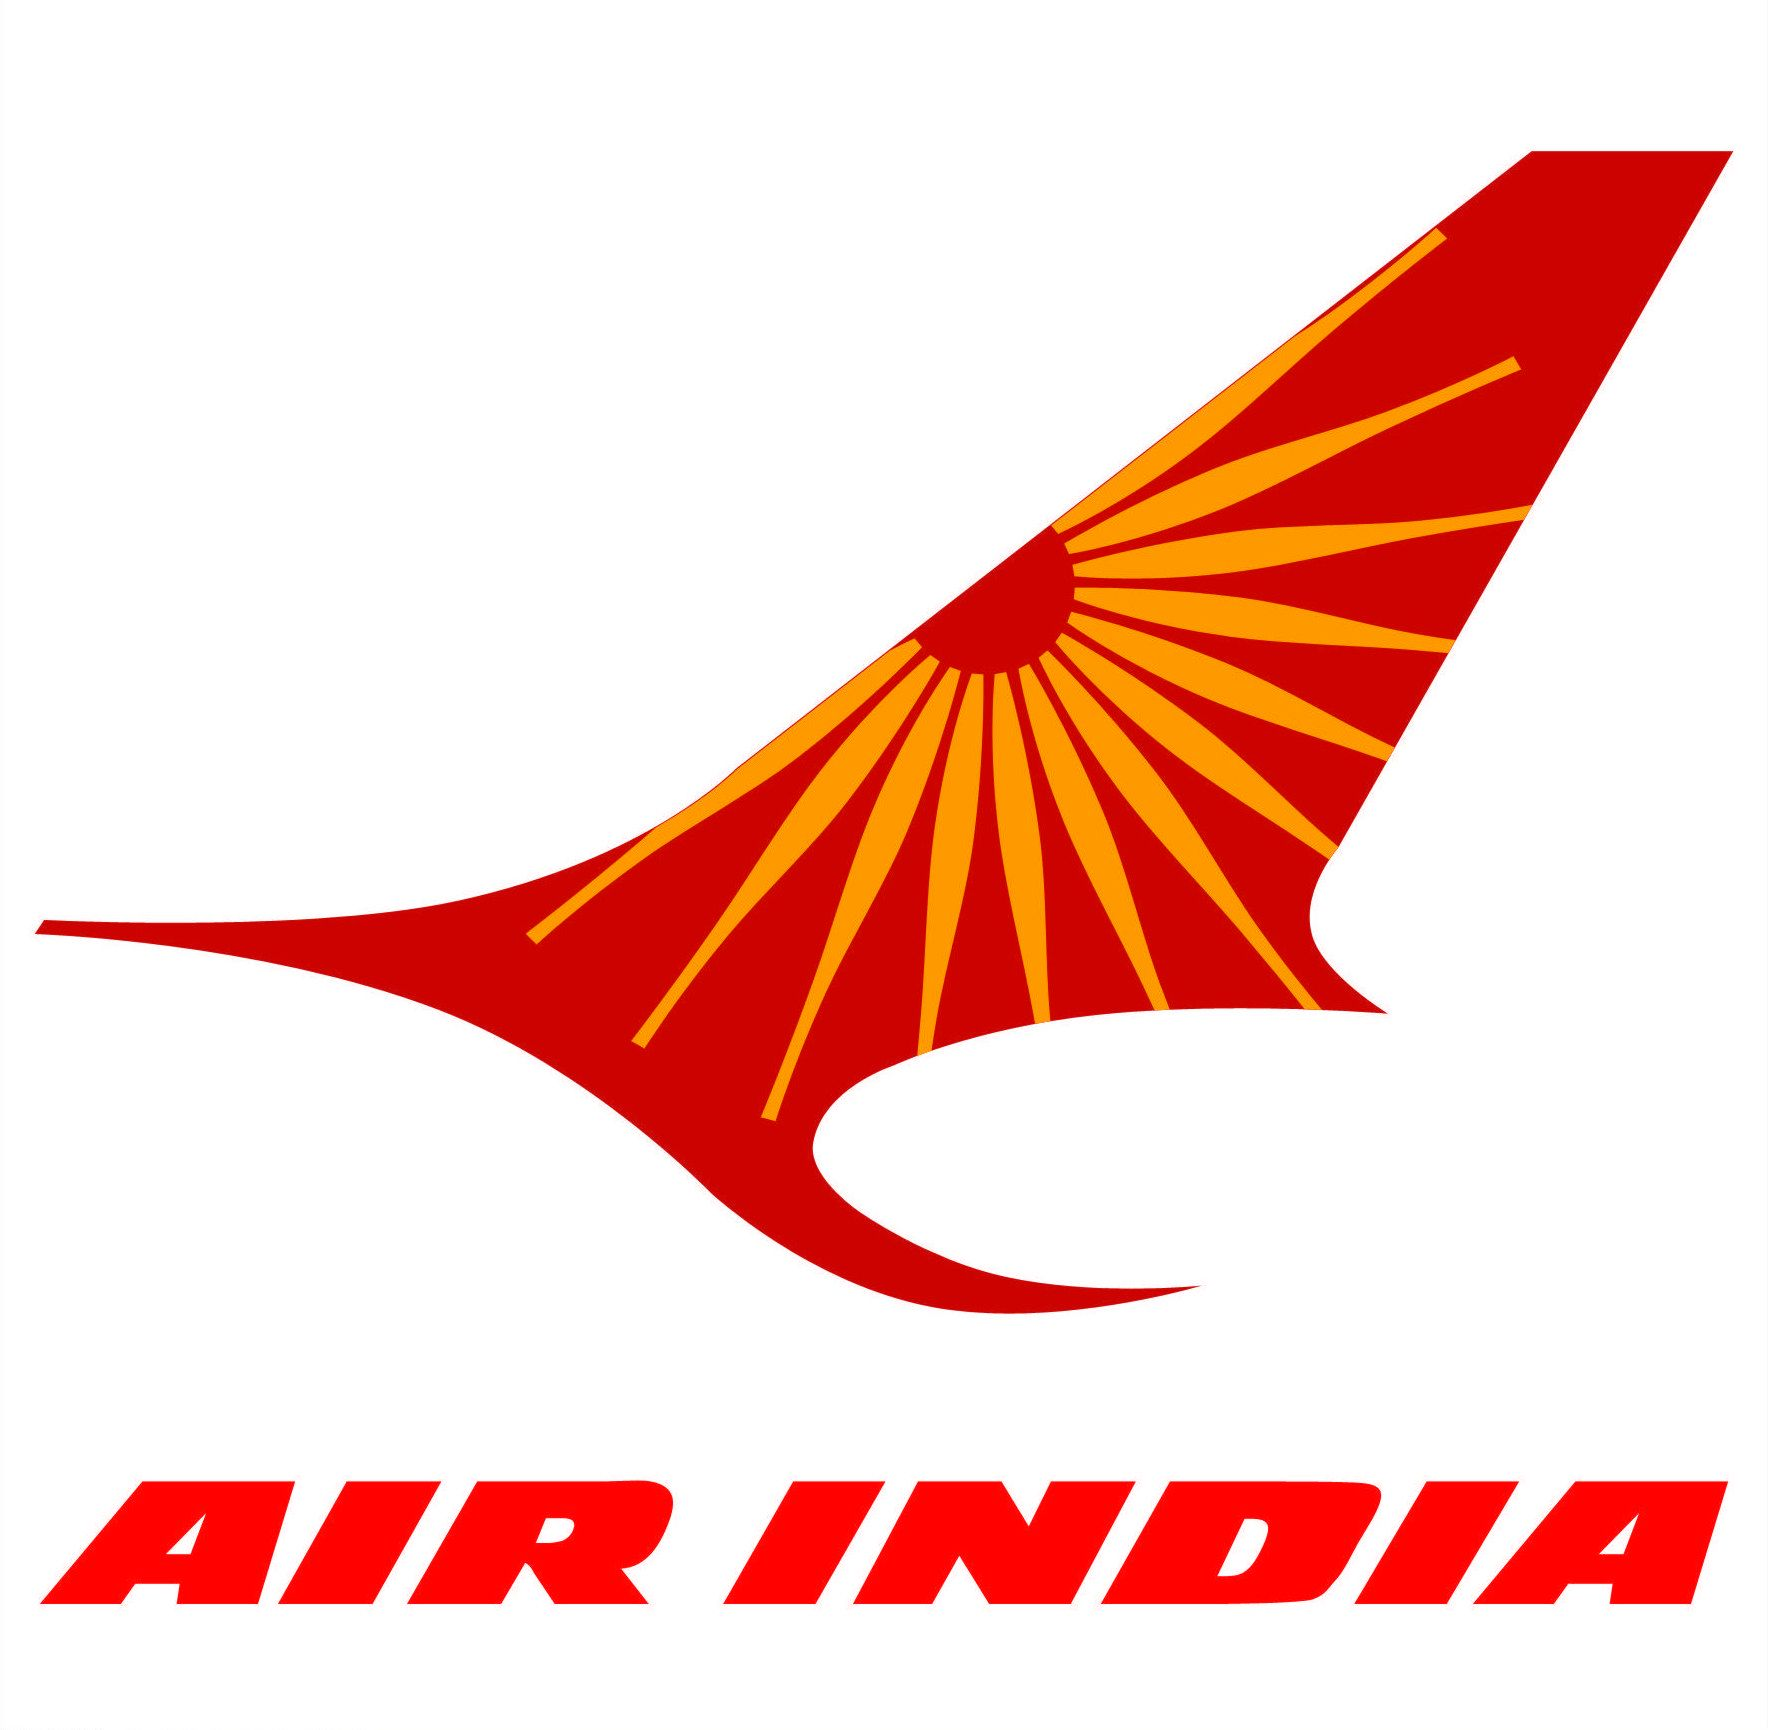 Air India logo INDIA Air india, Airline logo, India logo